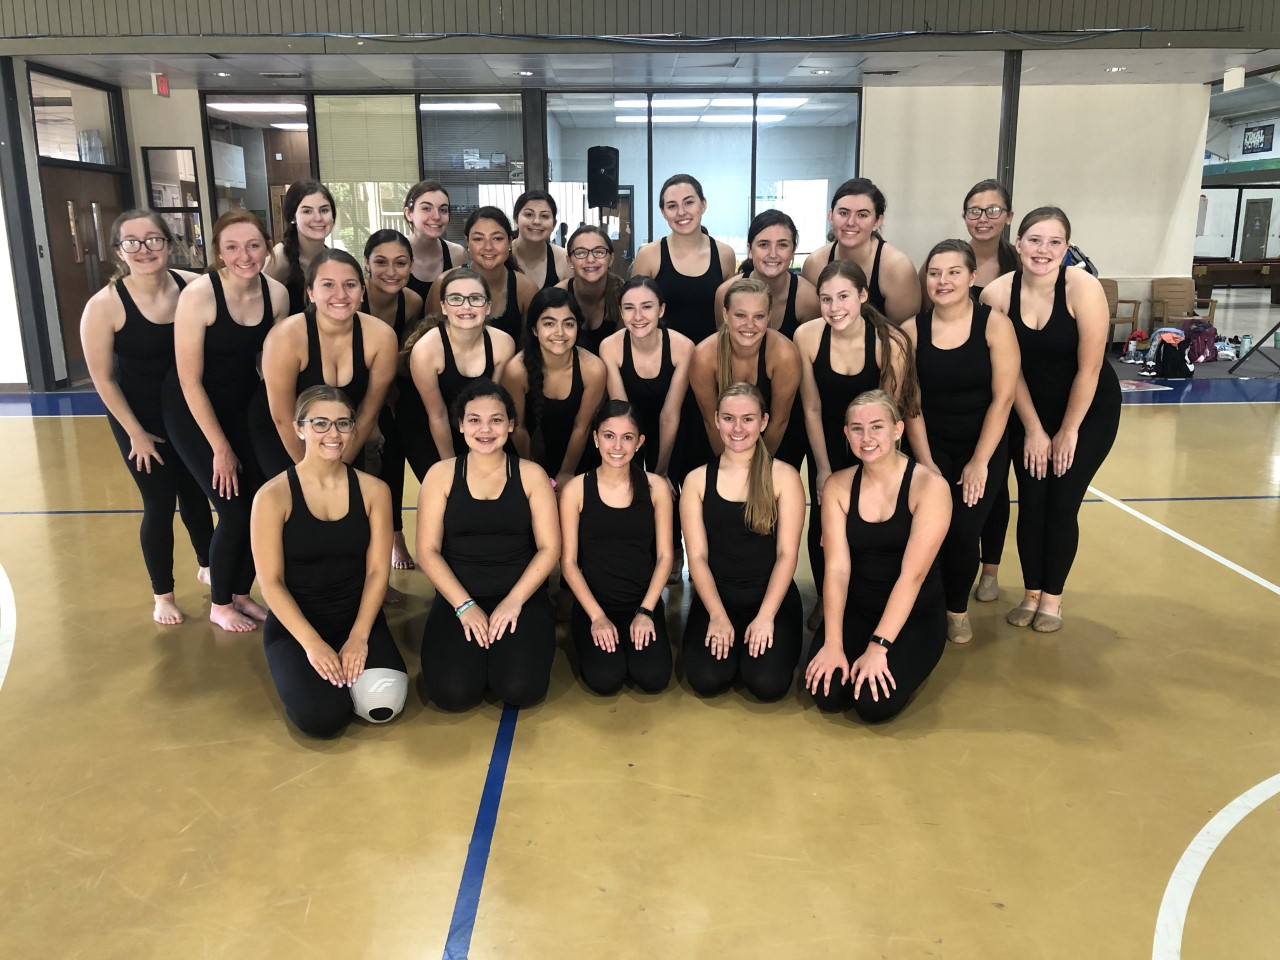 SFHS Tribal Belles Team Camp Awards